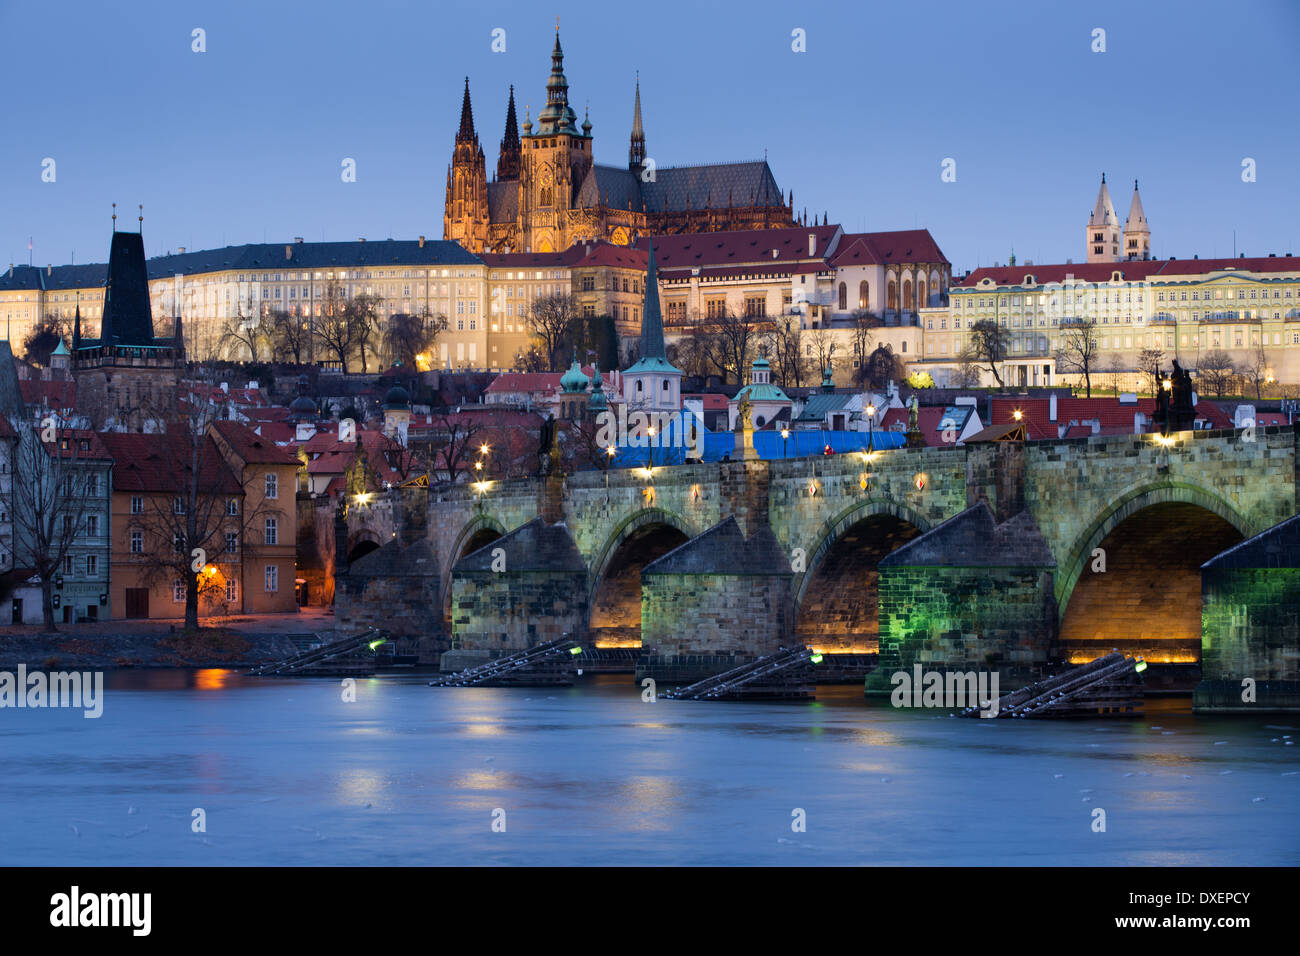 the Castle District, St Vitus Cathedral and the Charles Bridge over the River Vltava at dusk, Prague, Czech Republic - Stock Image